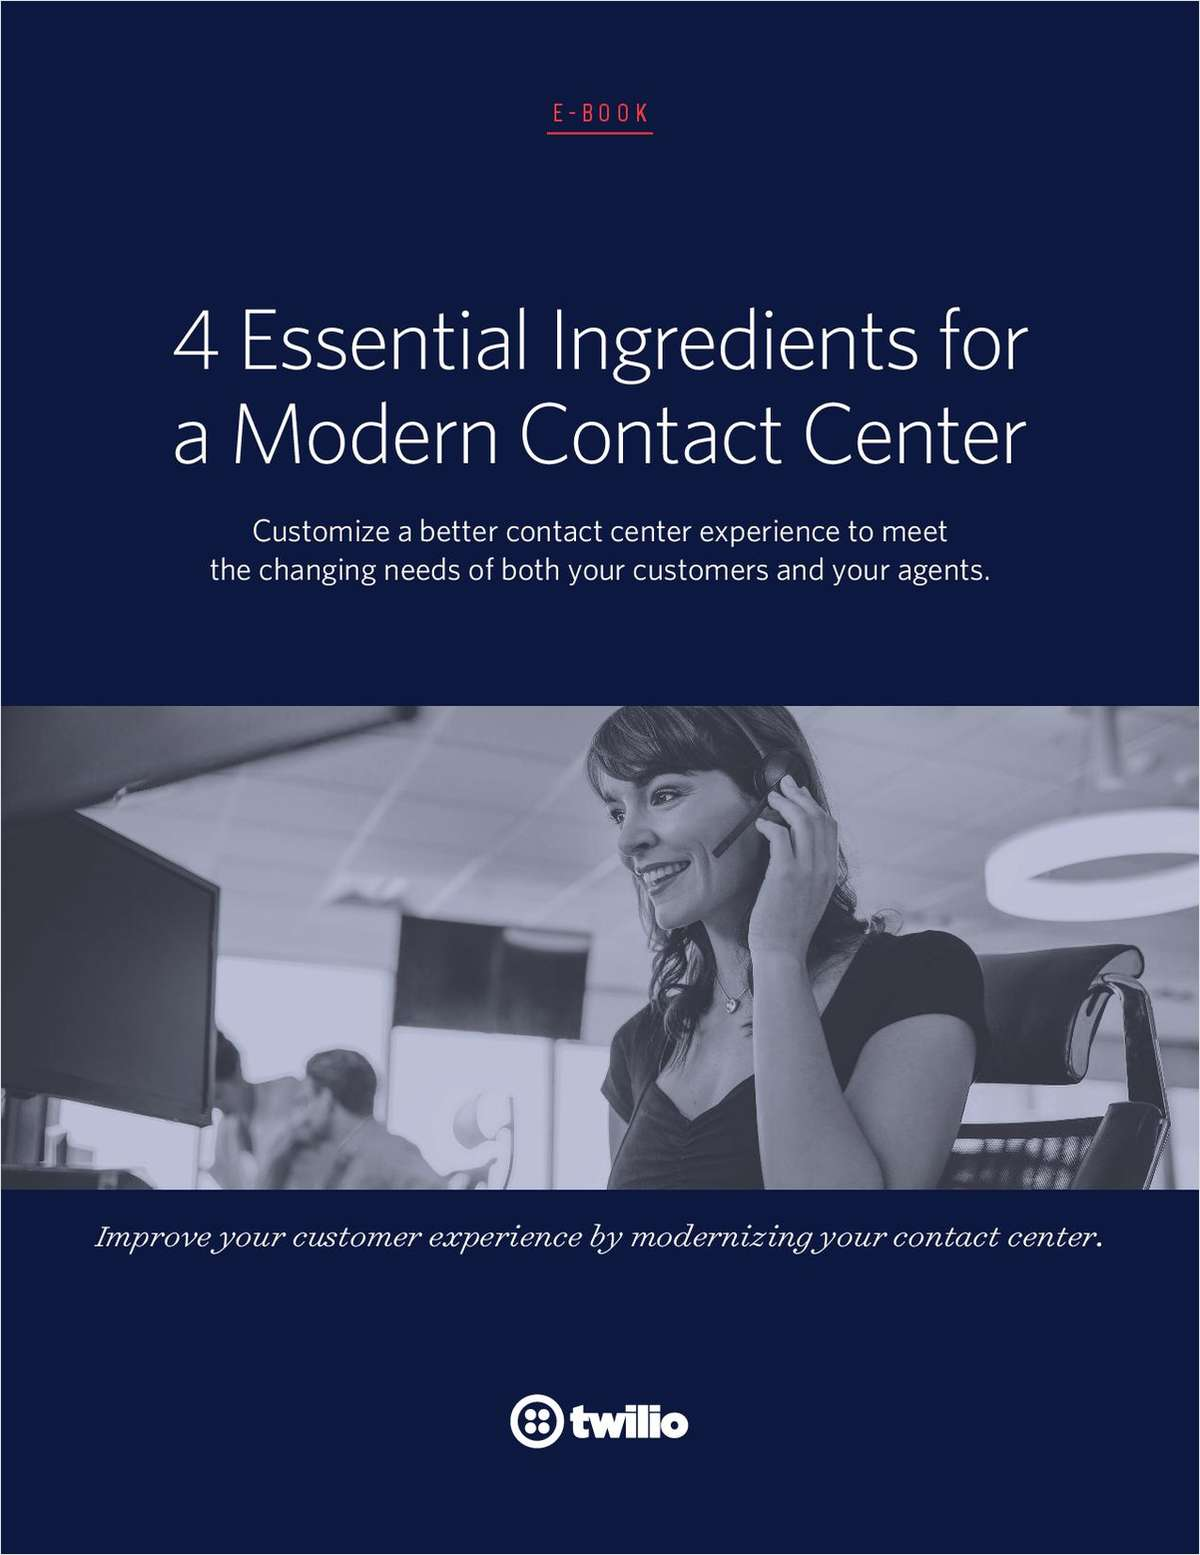 4 Essential Ingredients for A Modern Contact Center